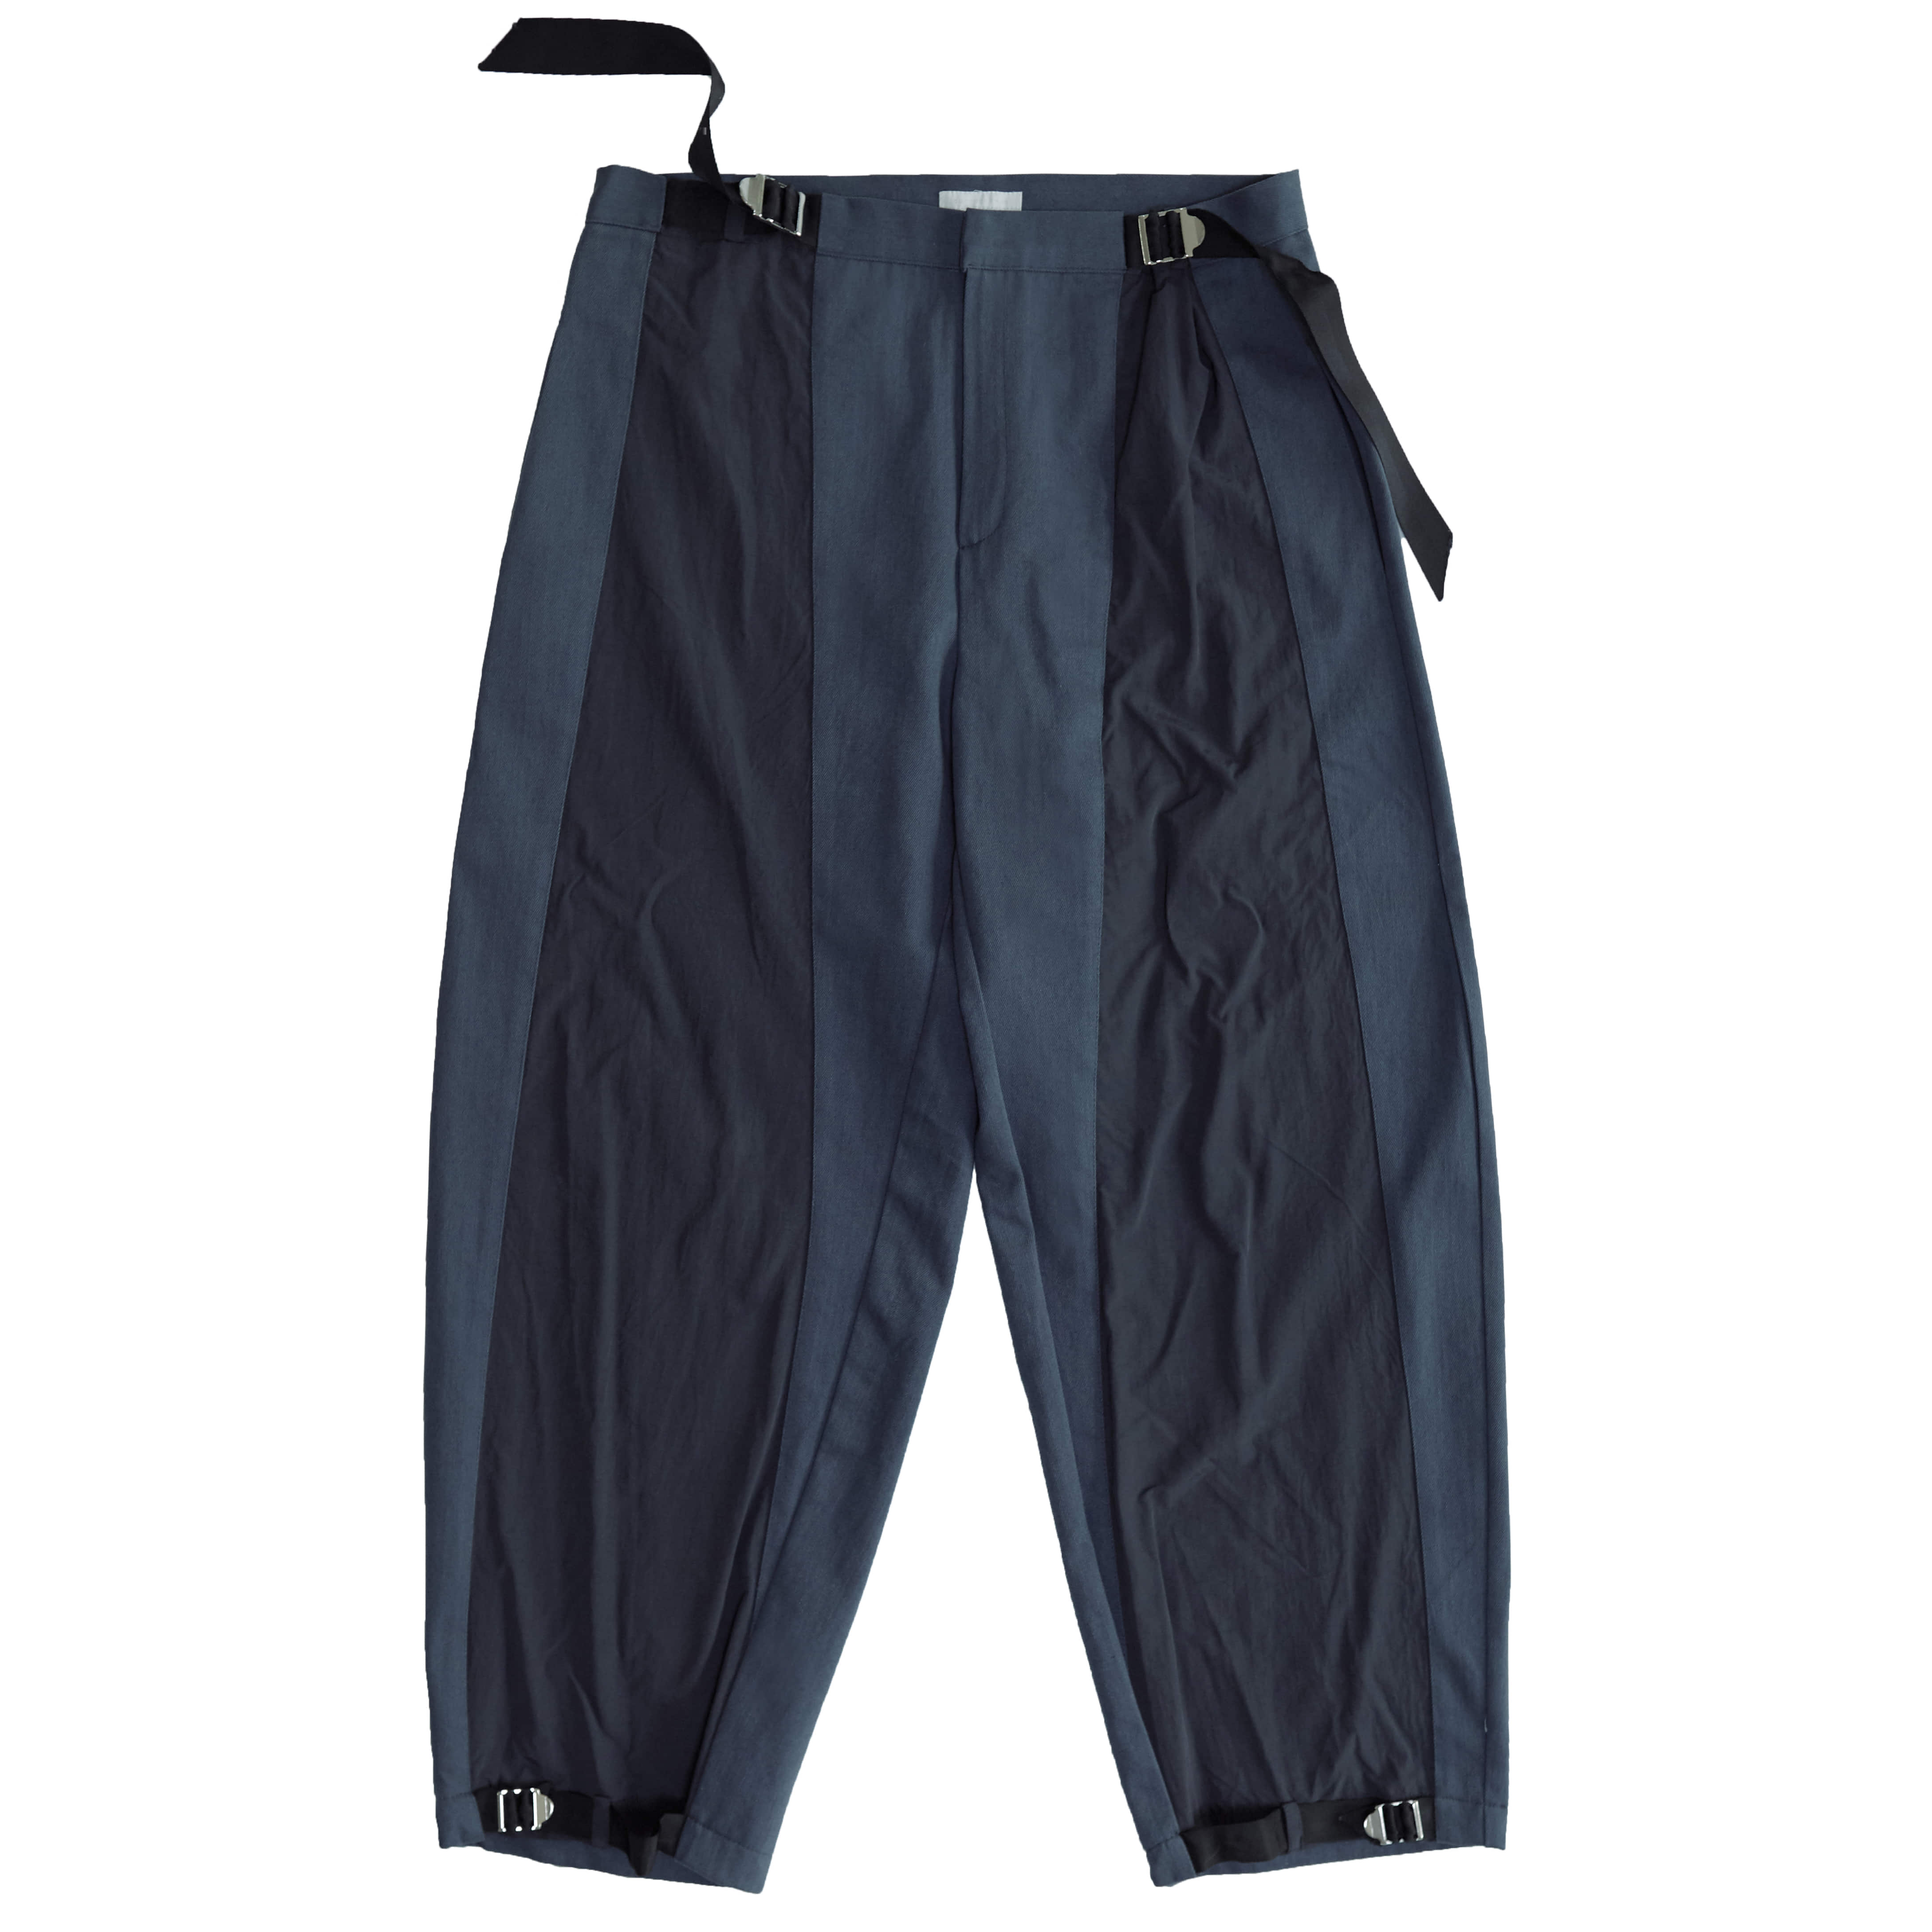 belted track pants (navy)